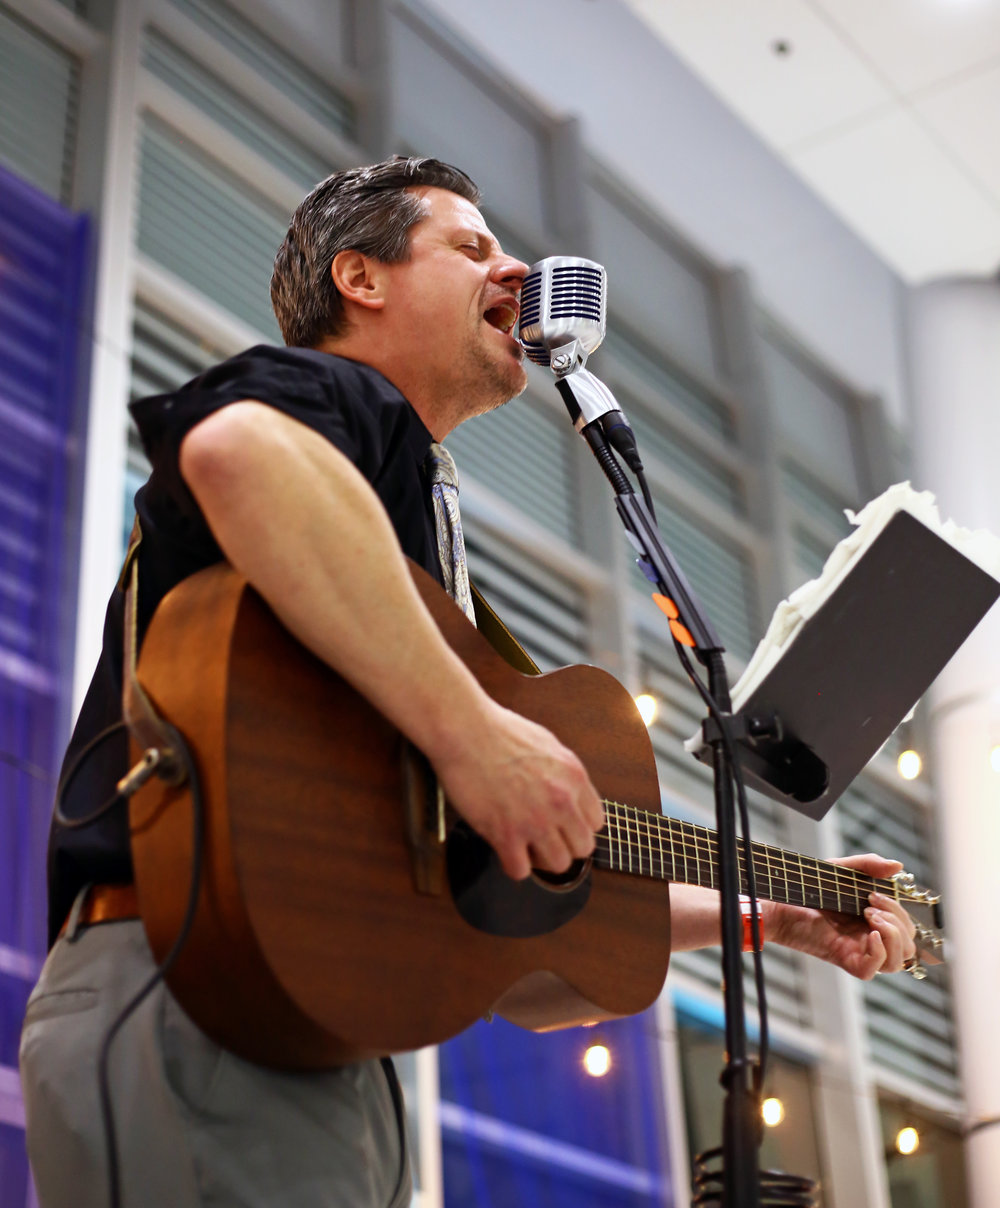 Penta Career Center health and physical education teacher and local musician Dave Carpenter performs acoustic covers of pop songs during the annual Penta Career Center Scholarship Dinner at the Penta Career Center in Perrysburg, Oh. on Thursday, Dec. 1, 2016.